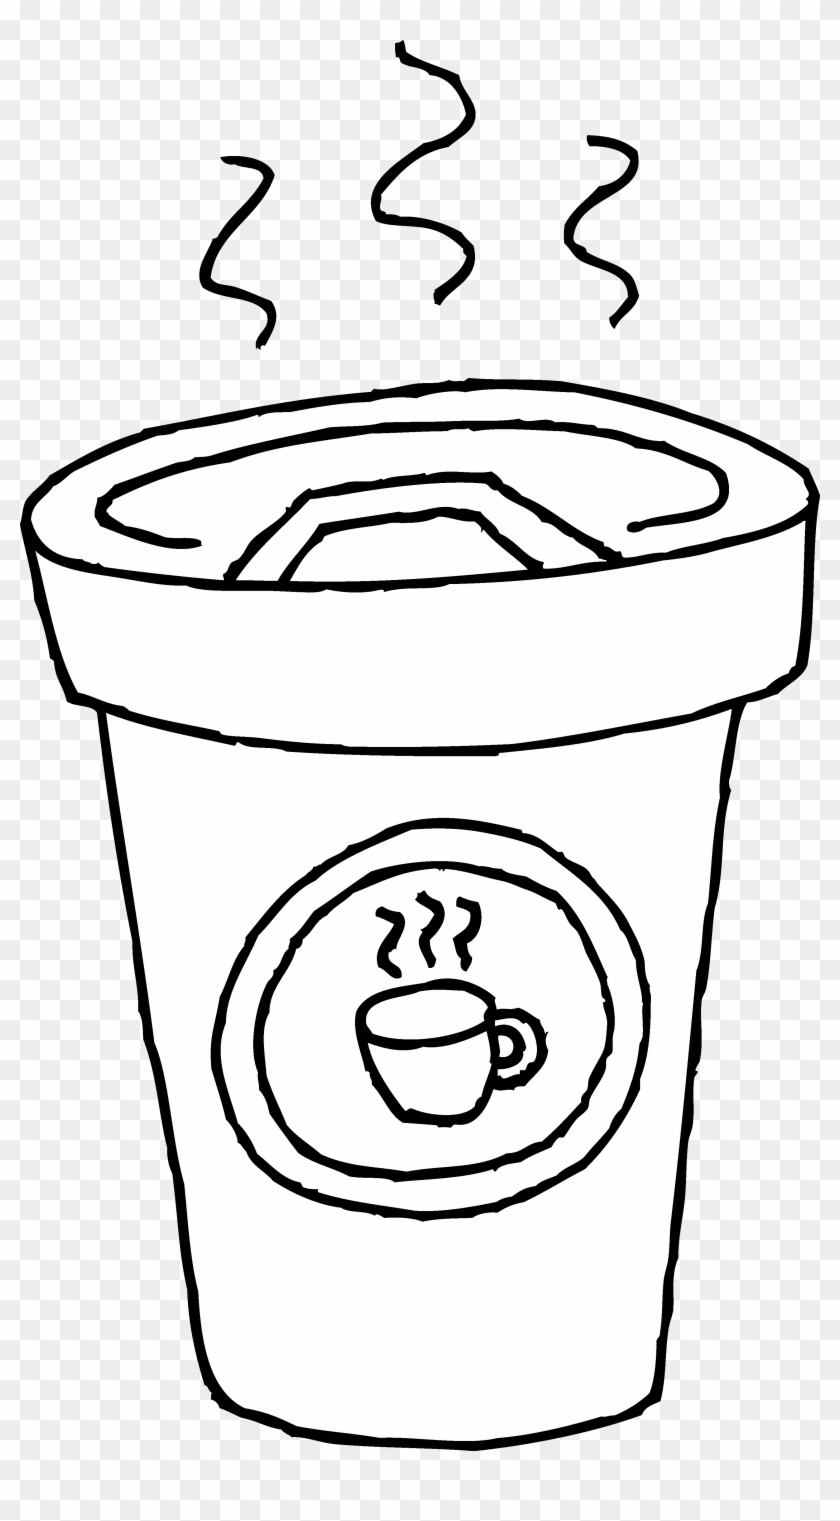 Drawn Mug Coloring Pages - Coffee Cup Clip Art #460776